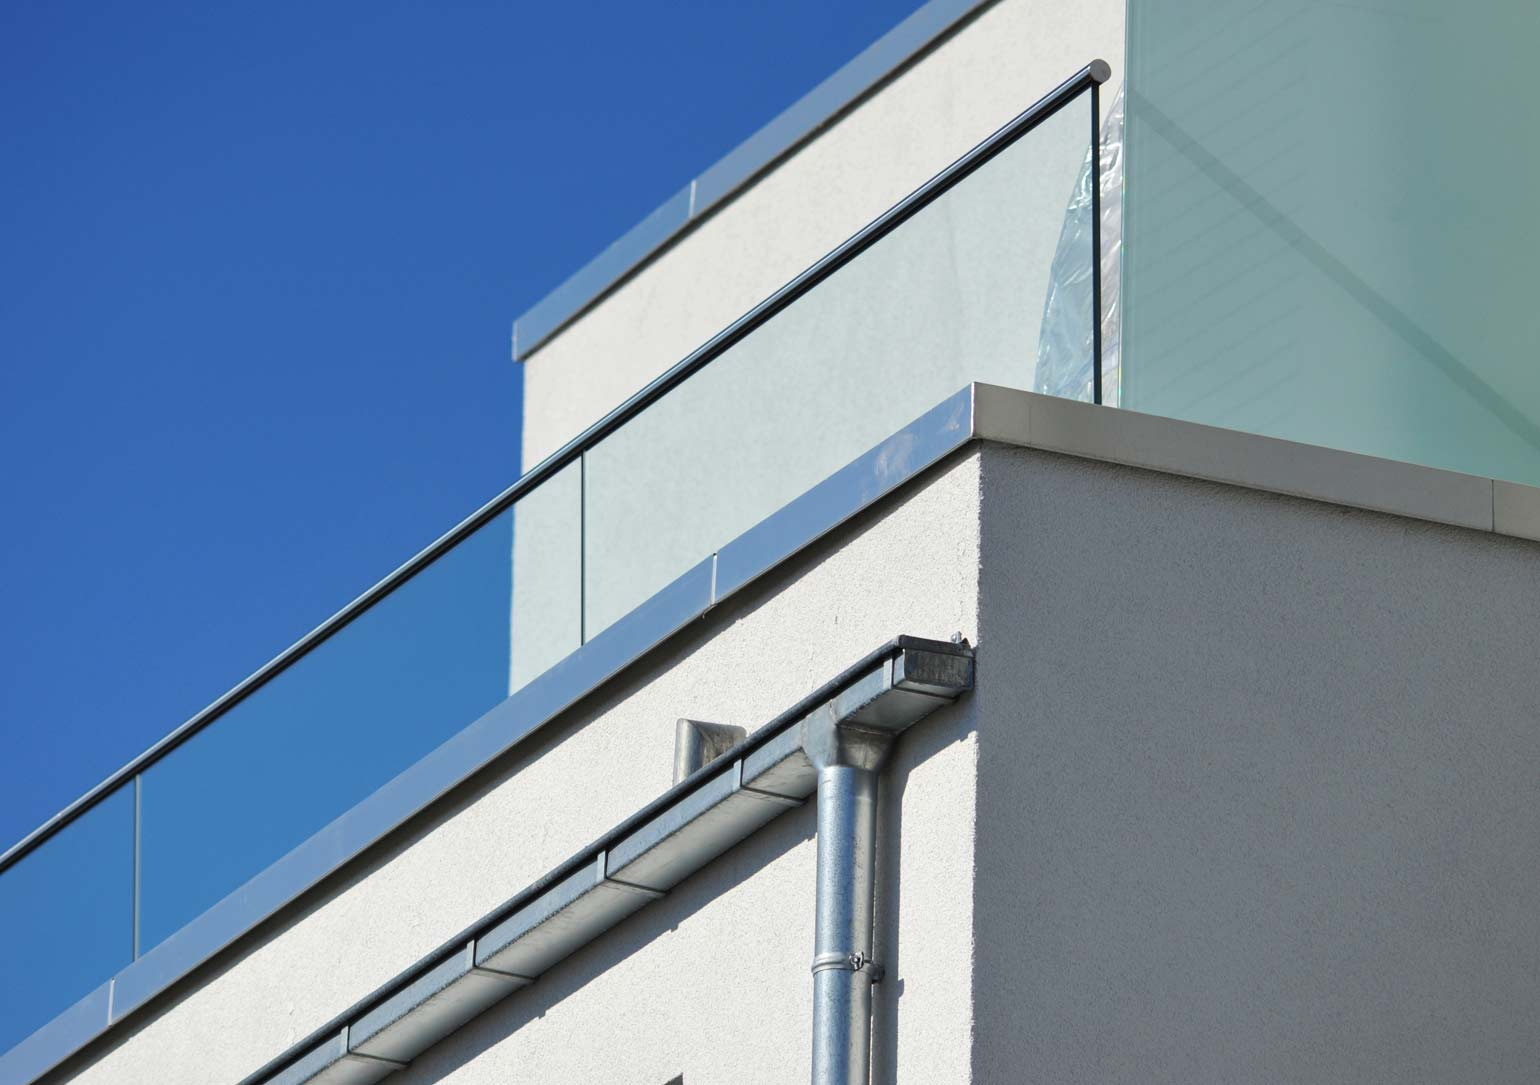 Professional Office Gutter Cleaning in Northants